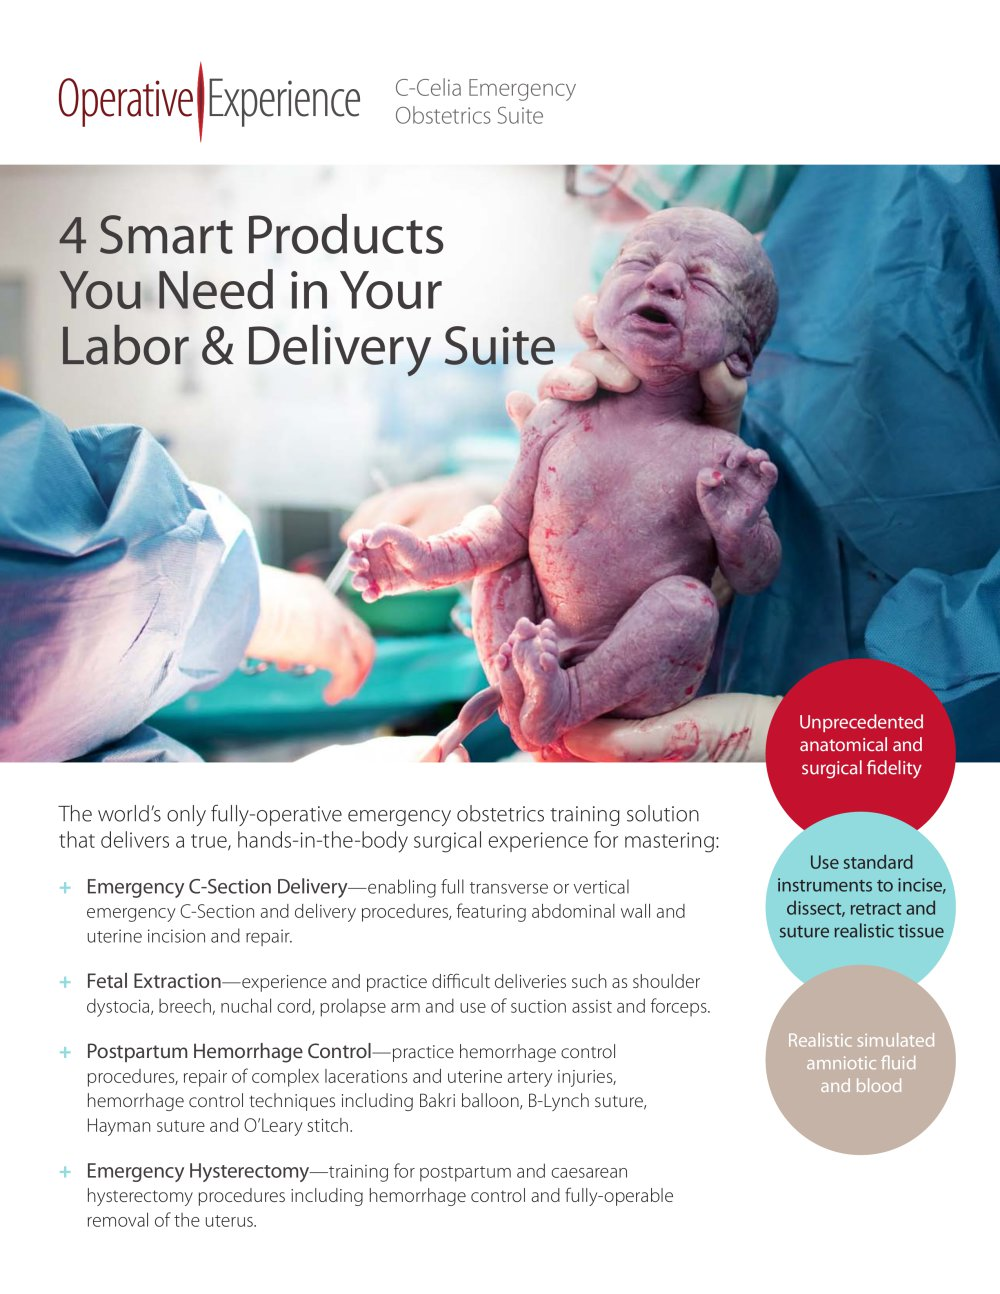 C-Celia™ Emergency Obstetrics Suite - Operative Experience Inc ...